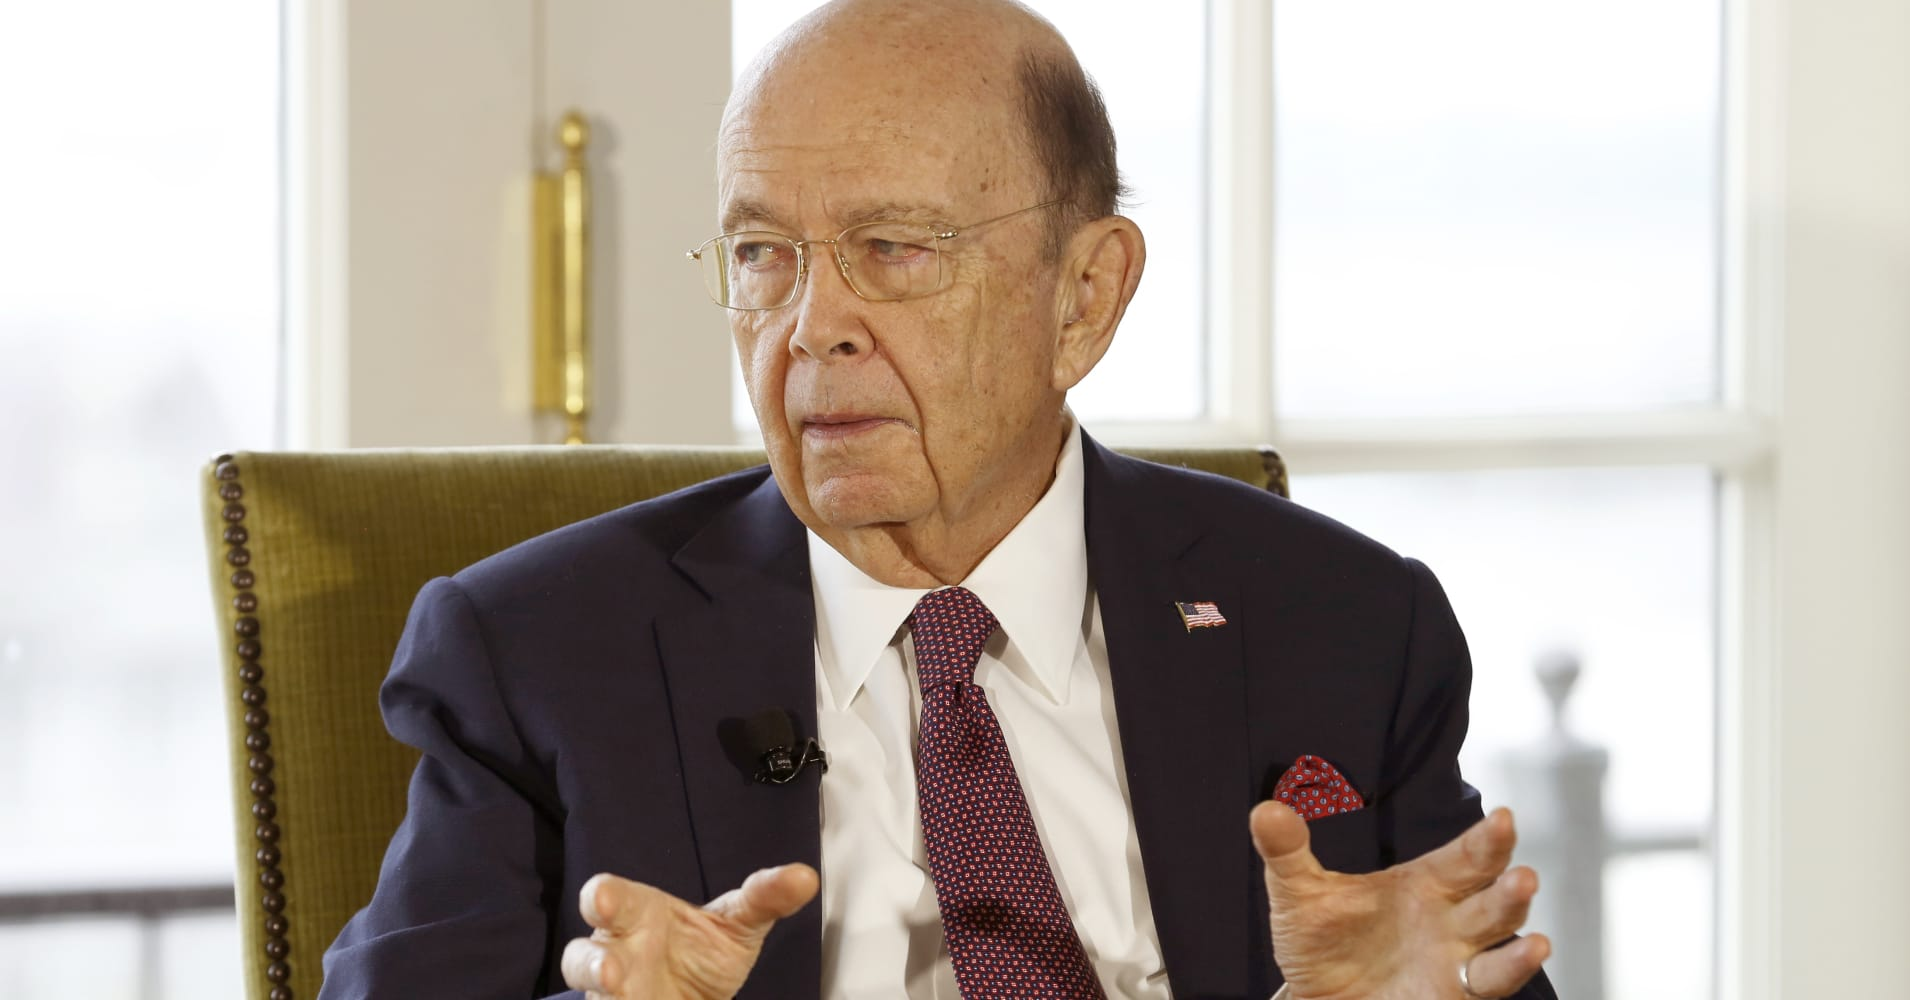 cnbc.com - Matthew J. Belvedere - Commerce Secretary Wilbur Ross: Trump's new trade tariffs aimed at modifying China's behavior